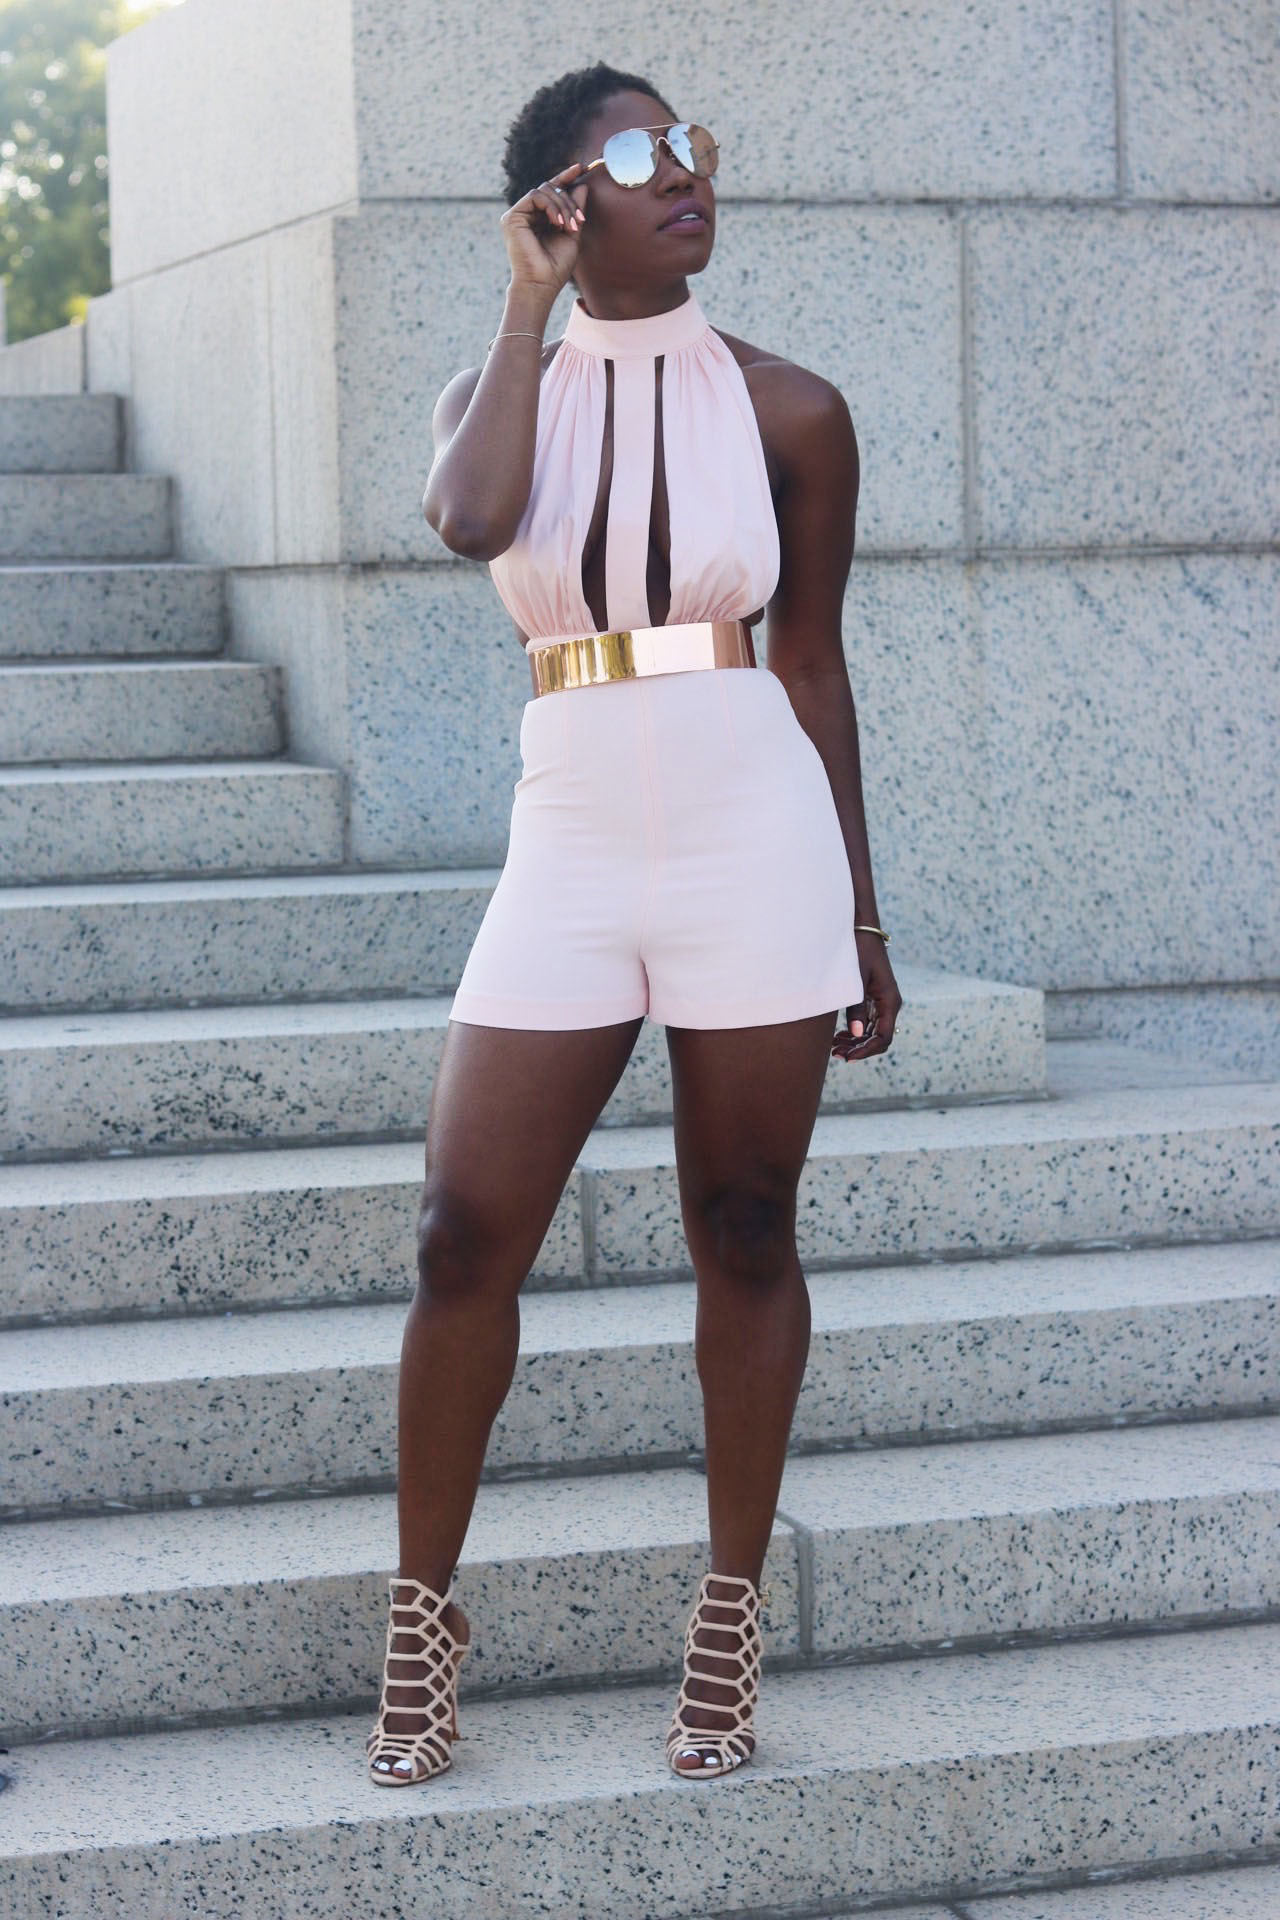 style-synopsis-structured-playsuit-caged-heeld-sandals-look